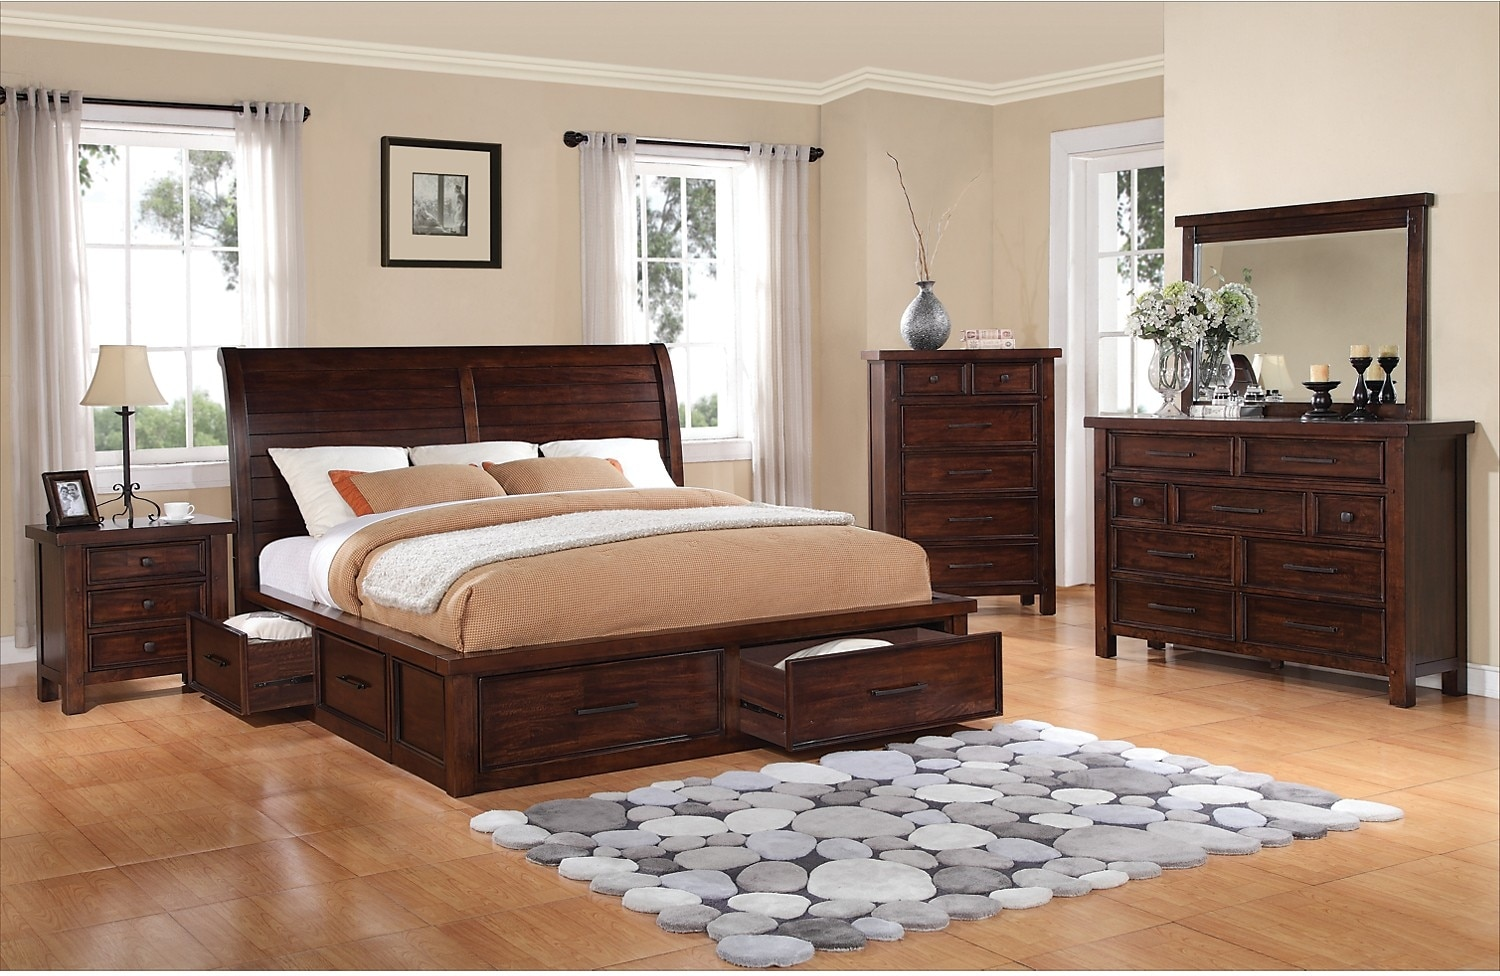 Kids Bedrooms Ideas Sonoma 8 Piece King Storage Bedroom Set Dark Brown The